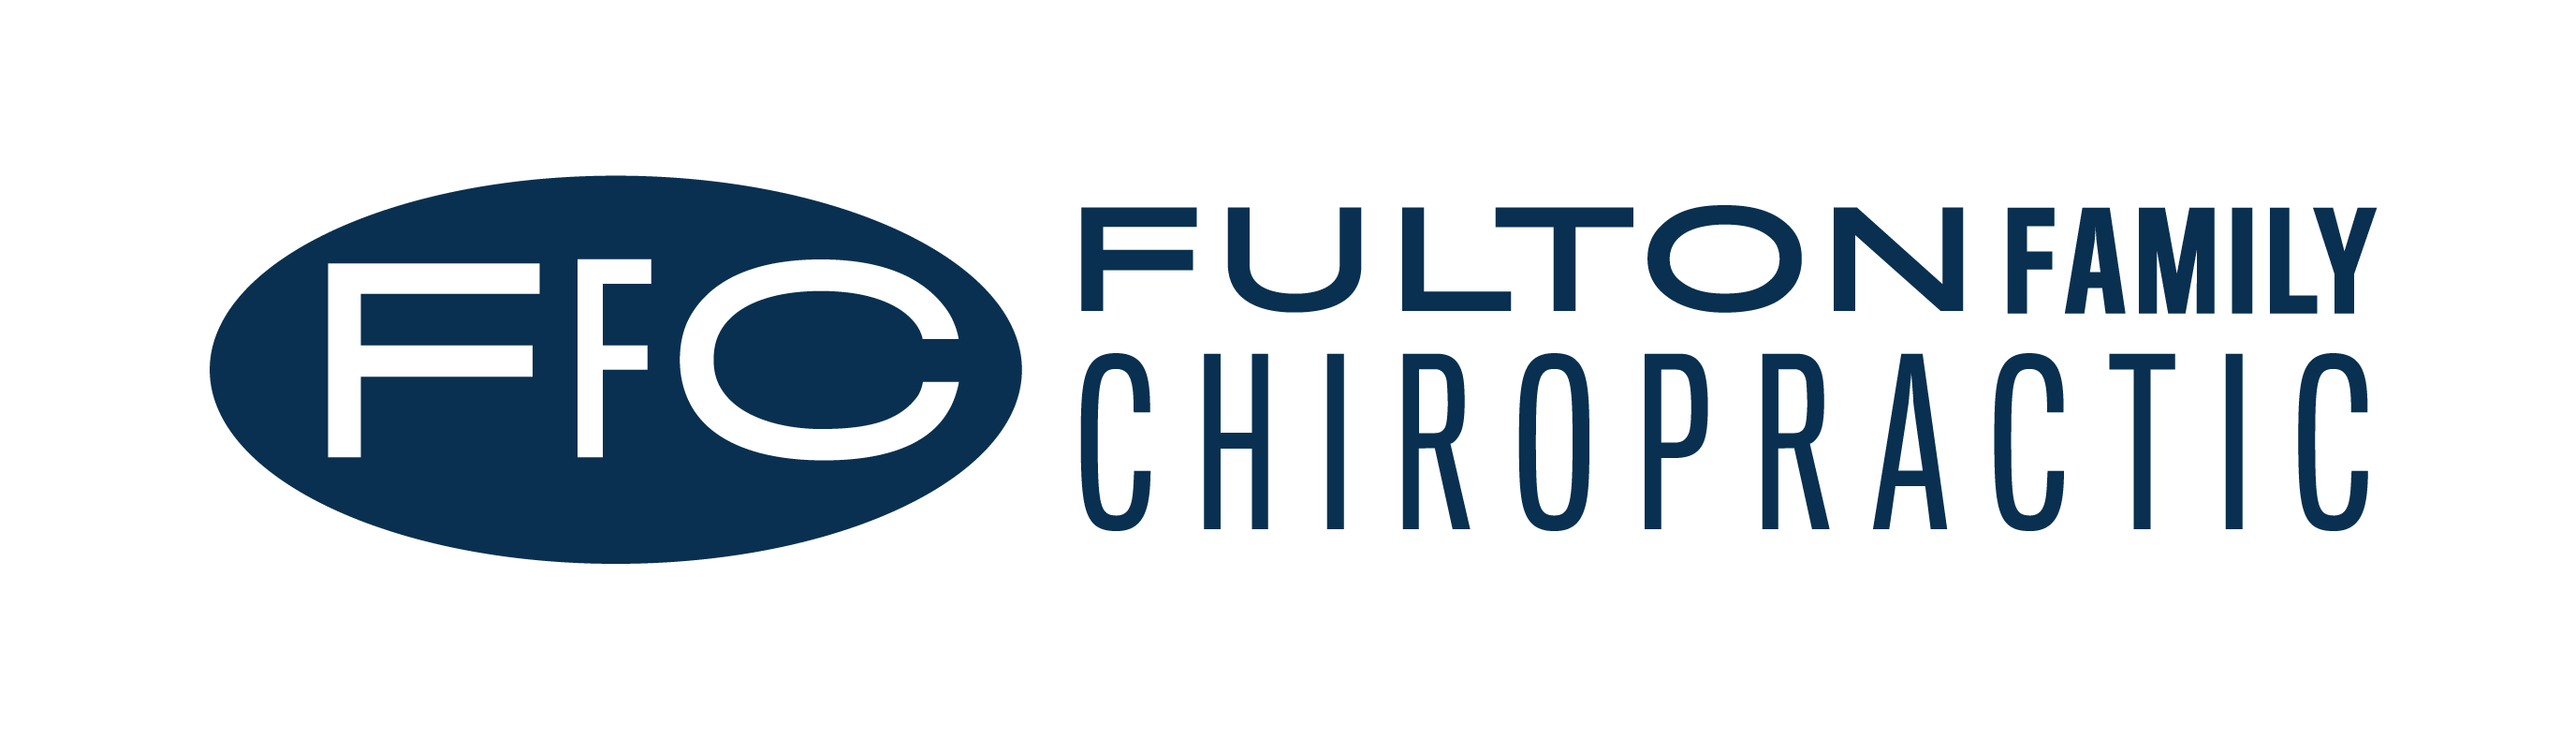 Fulton Family Chiropractic